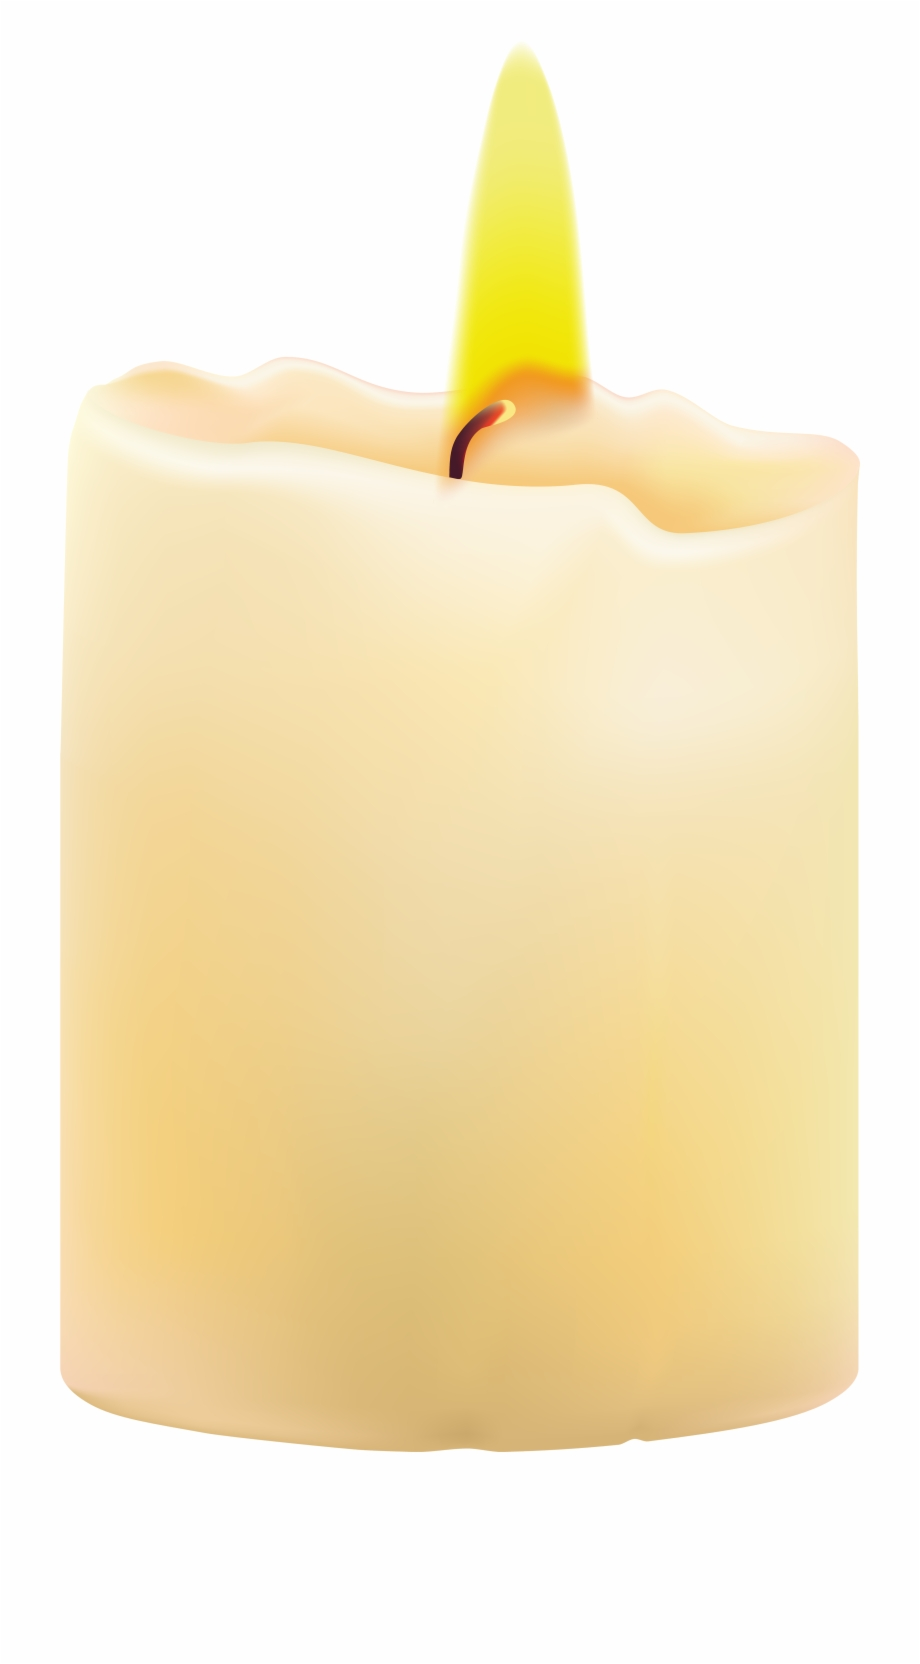 Wax Candle Clipart Transparent.